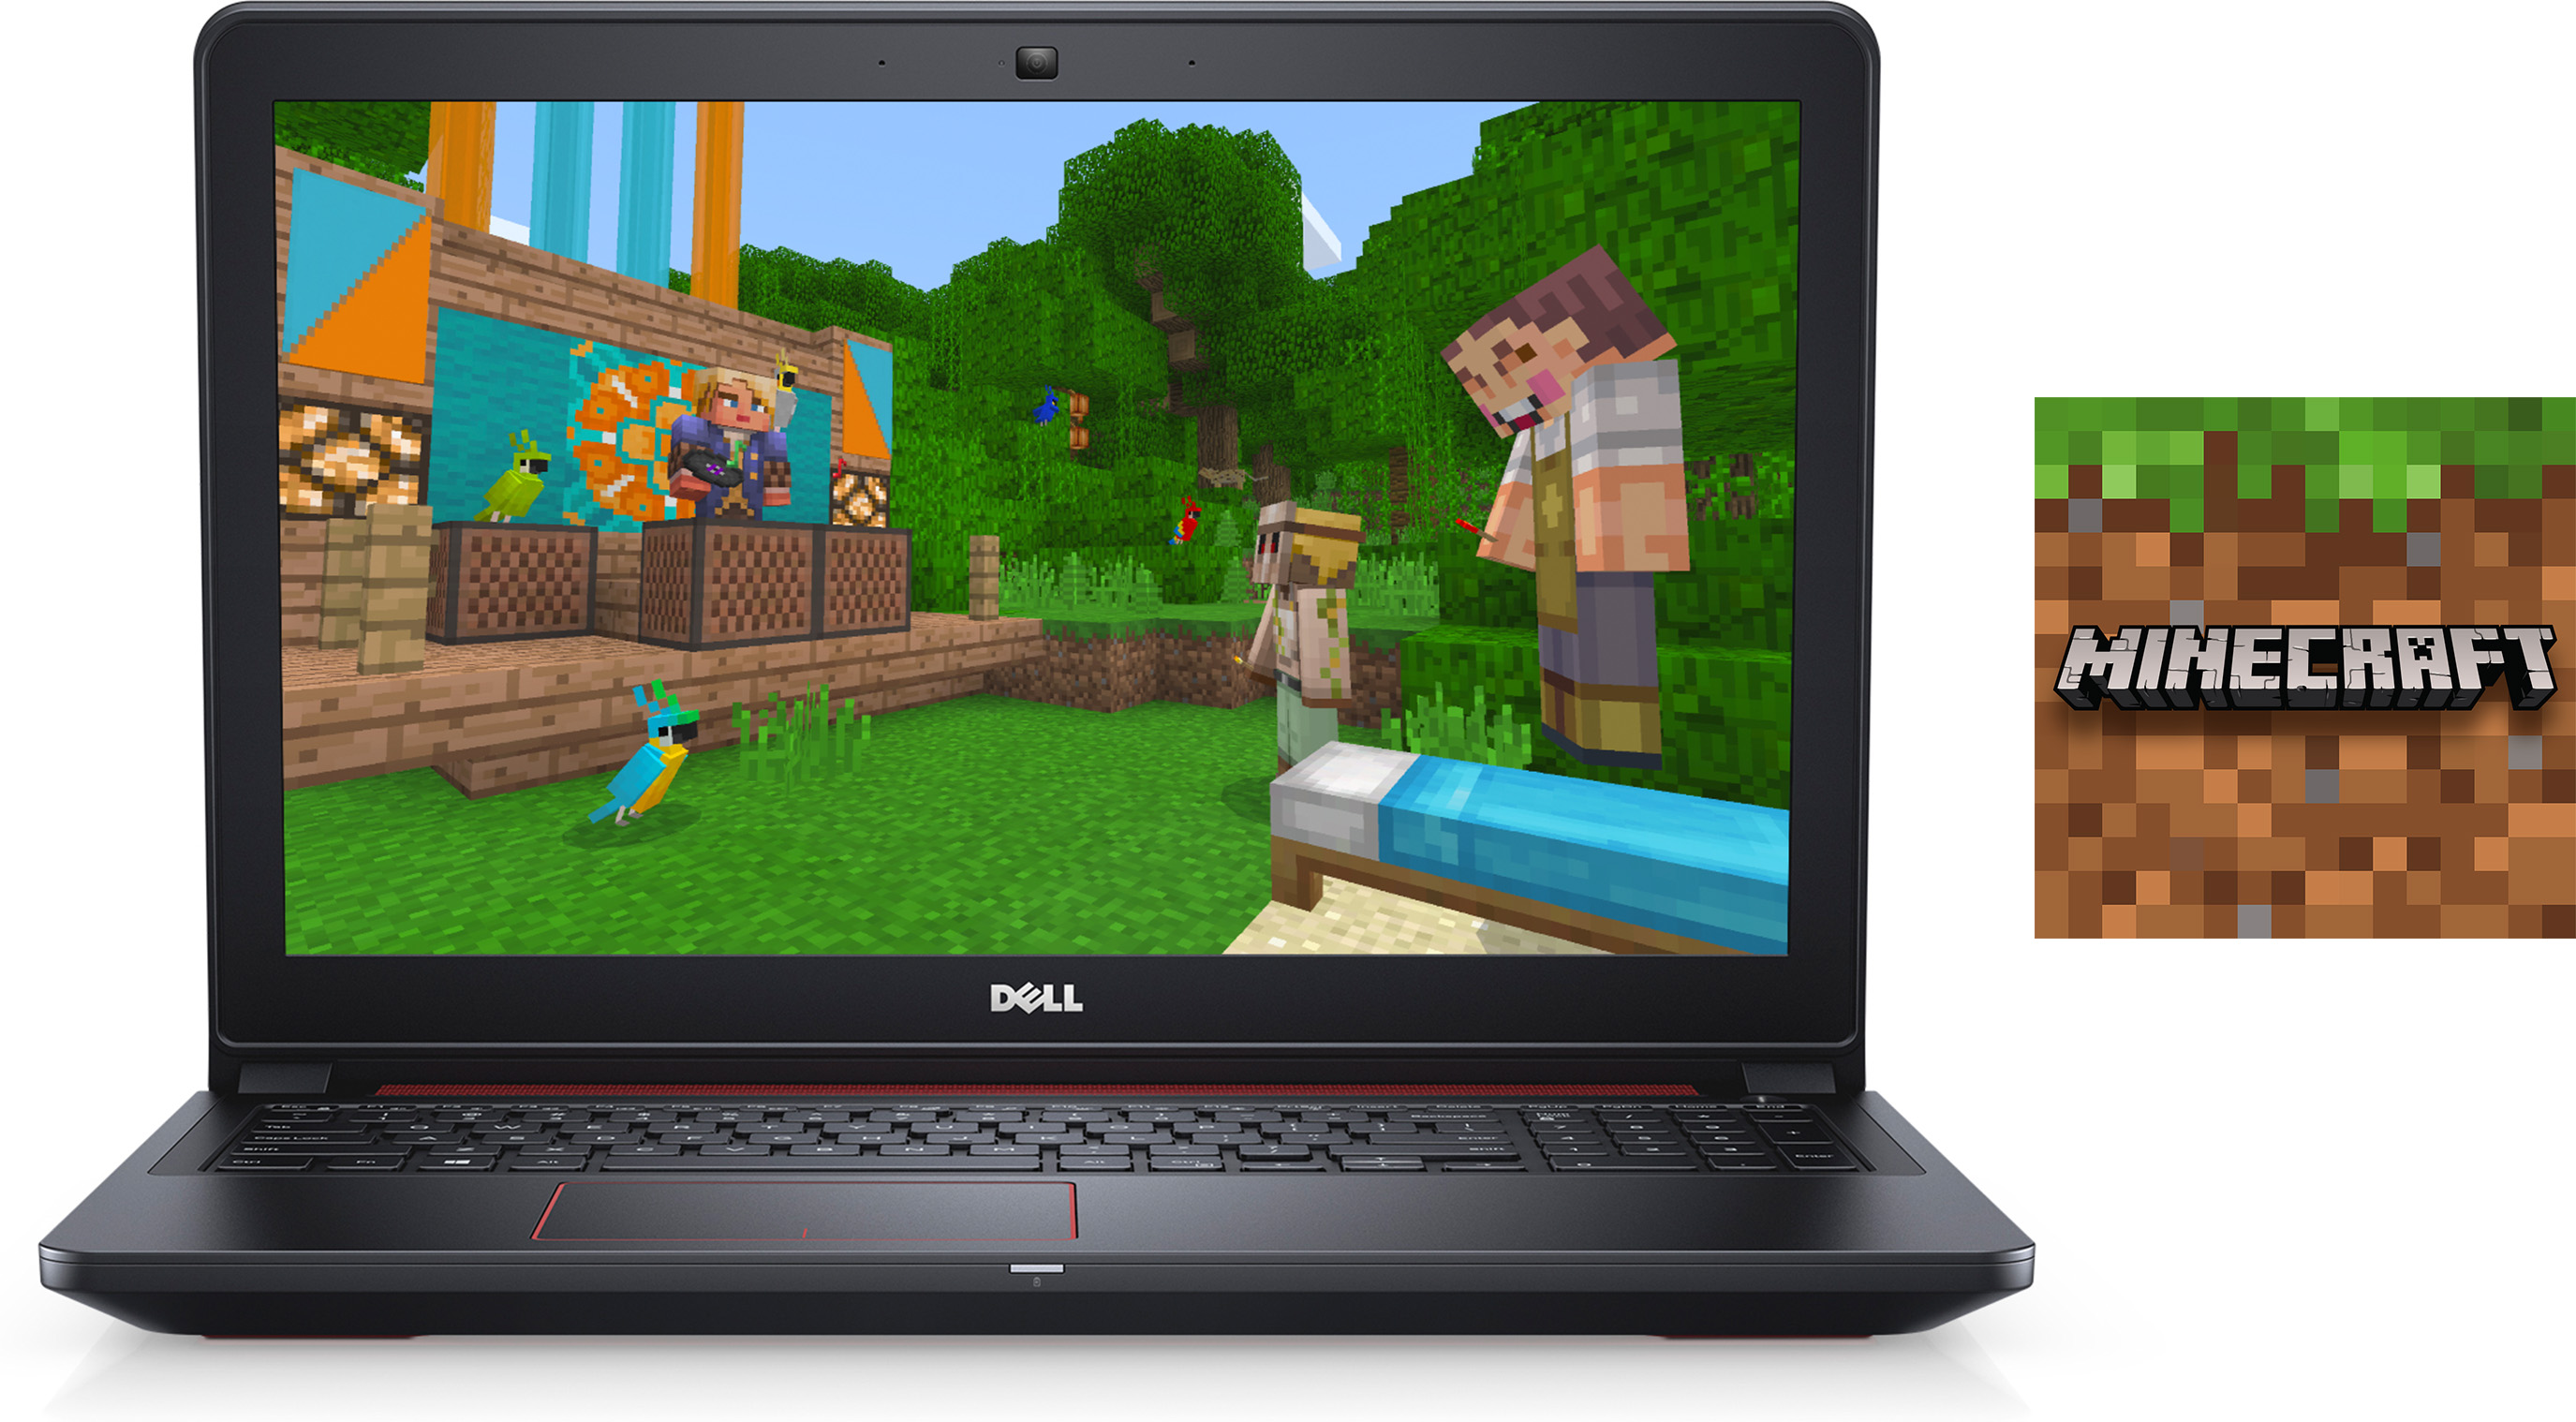 Dell Inspiron 15 Laptop and Minecraft for Windows 10 Bundle